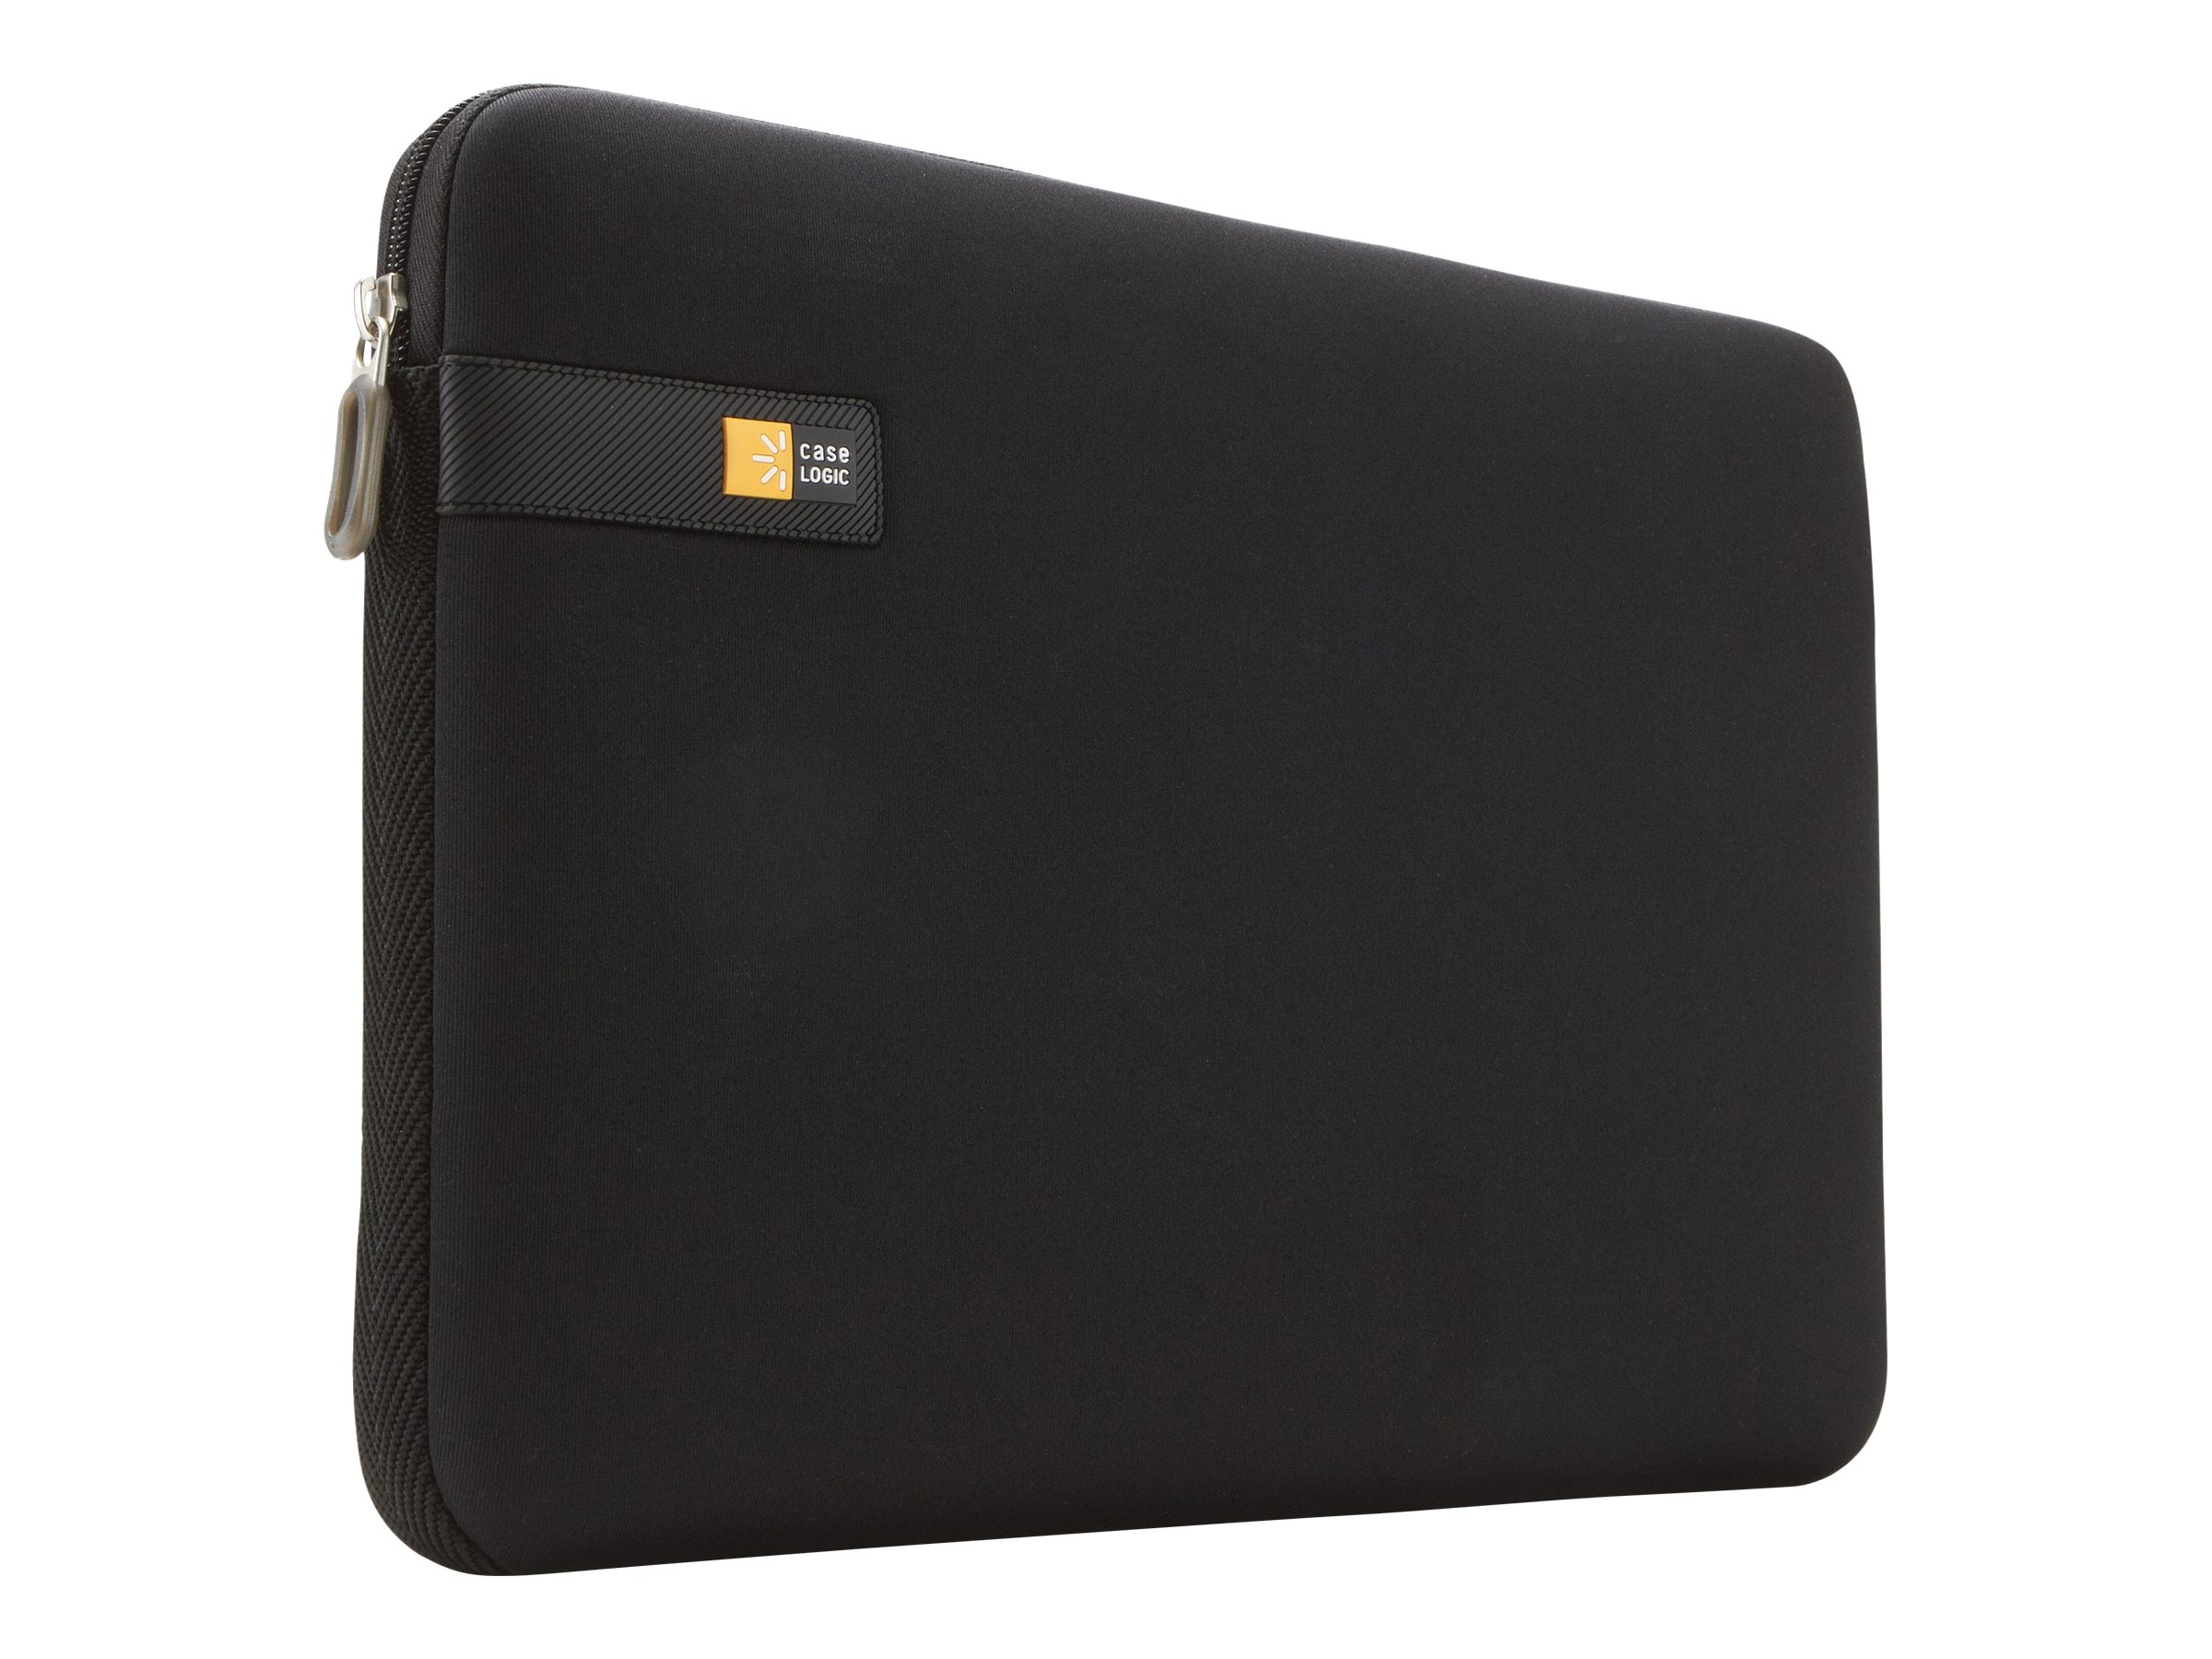 Case Logic 16 Laptop Sleeve, Black, LAPS-116black, 12575881, Protective & Dust Covers